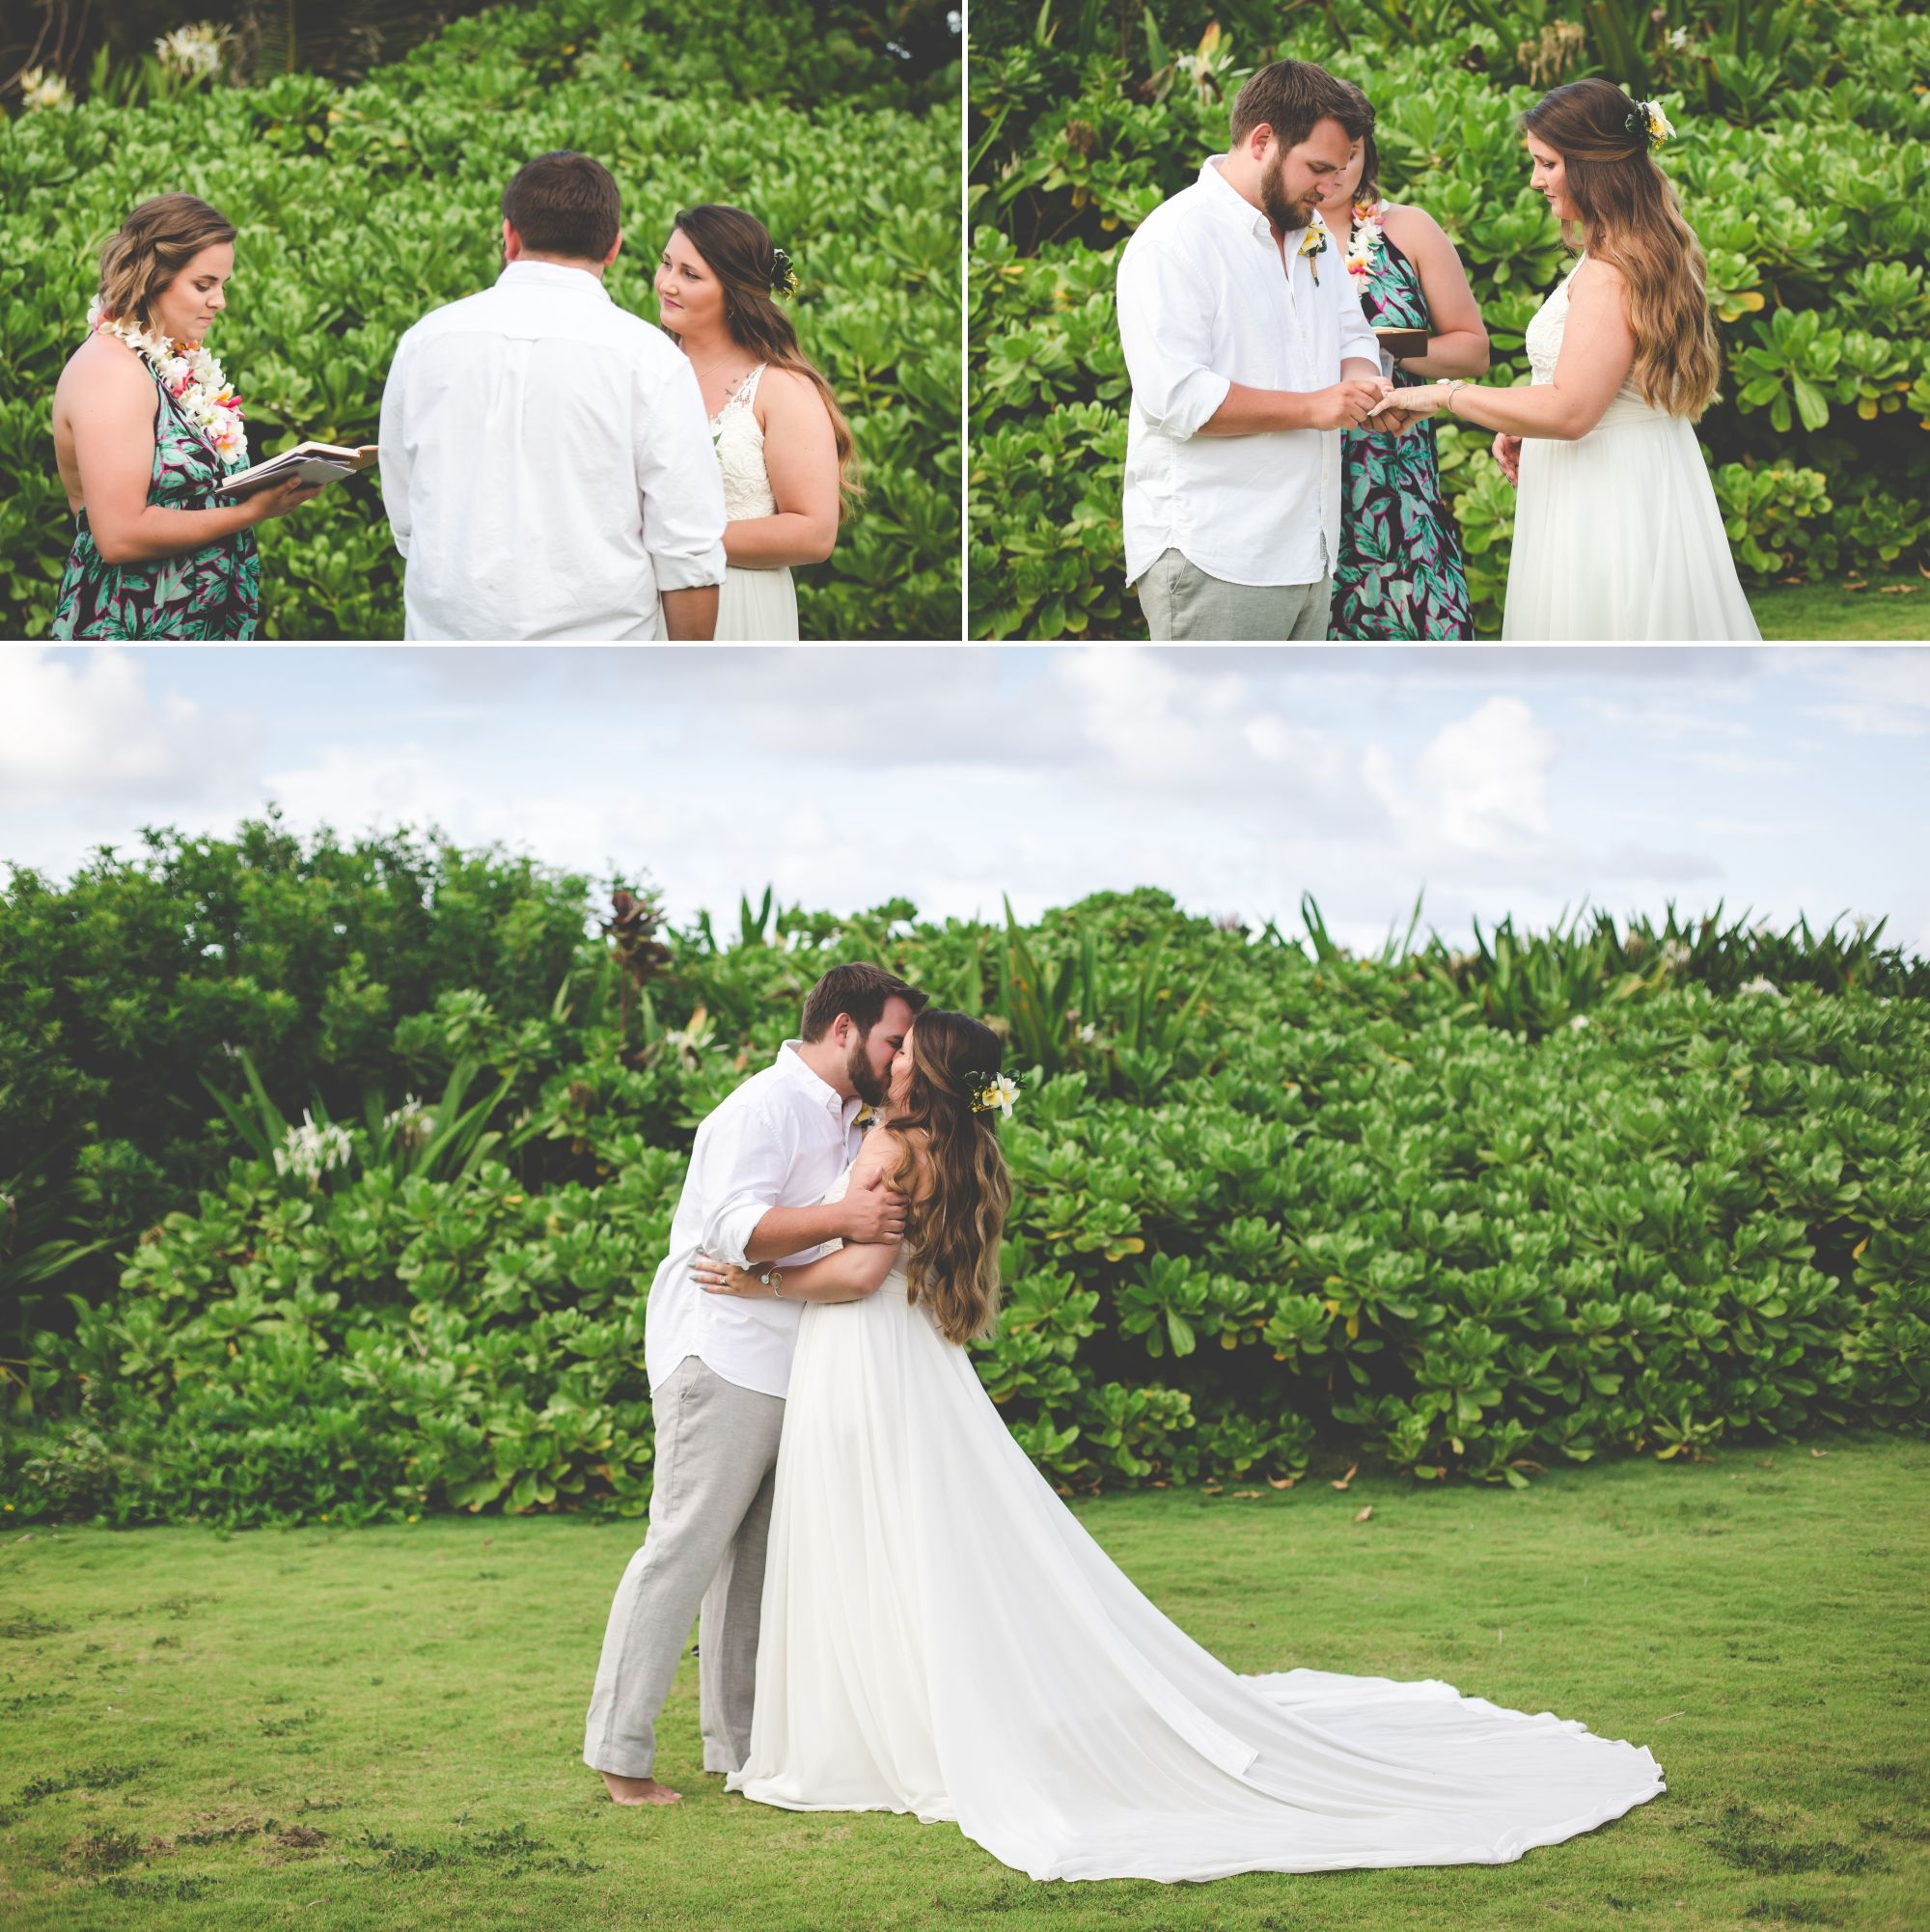 Photos of bride and groom exchanging vows, rings, and first kiss in front of green plants.